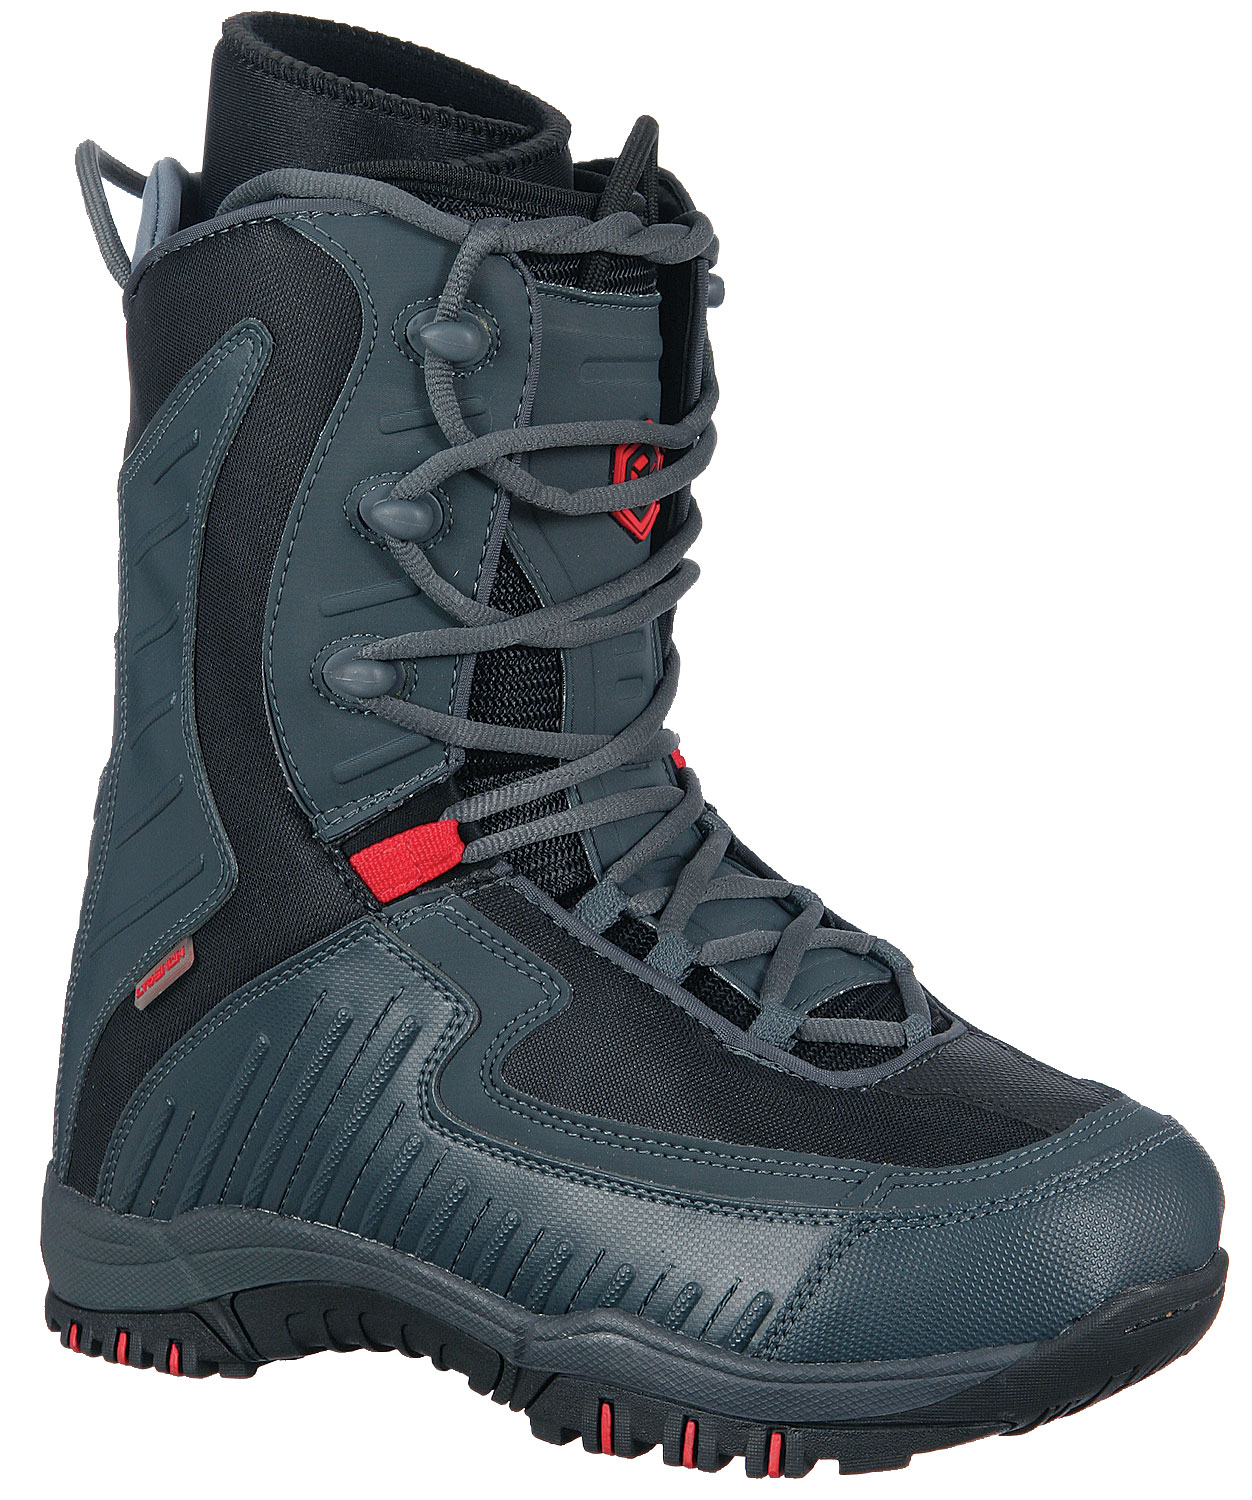 Snowboard The Limited Lyric Snowboard Boots boast an EVA liner to keep your feet comfortable and happy while you're riding hard. Key Features of the Limited Lyric Snowboard Boots: Thermoform EVA Lined Construction Rubber Cup Outsole with Molded-In Shank TPR Tongue and Flag Logos Flex-Zone Tongue Synthetic PVC Uppers 3-Rung Nylon Speed Hooks - $49.95